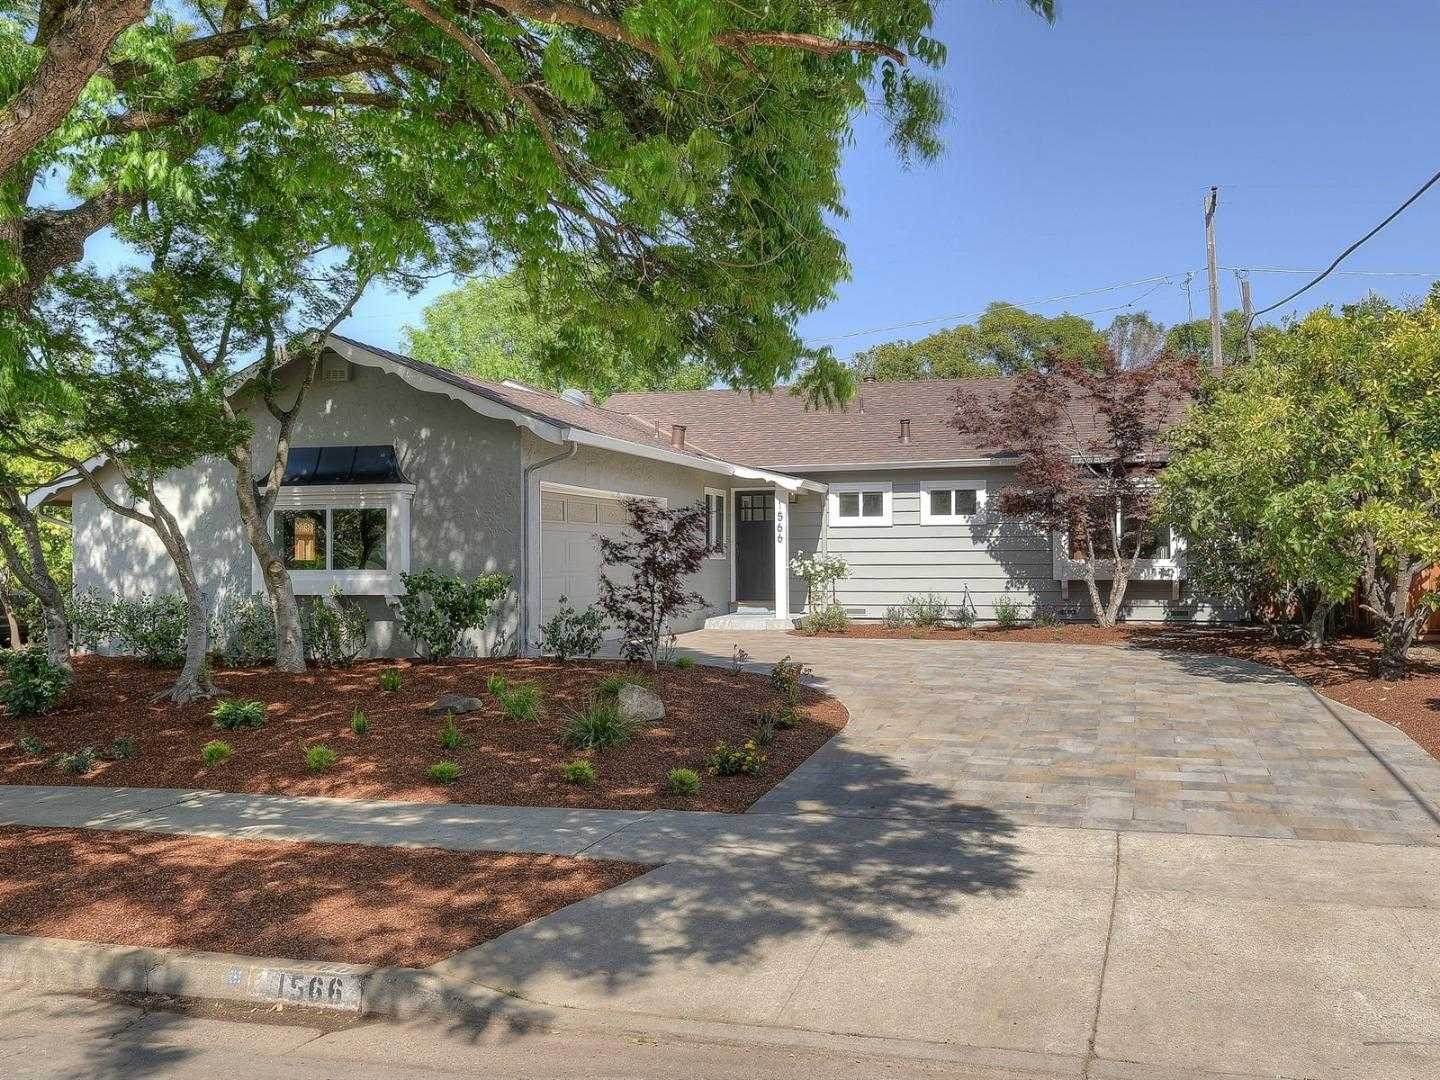 $2,198,000 - 3Br/2Ba -  for Sale in Cupertino